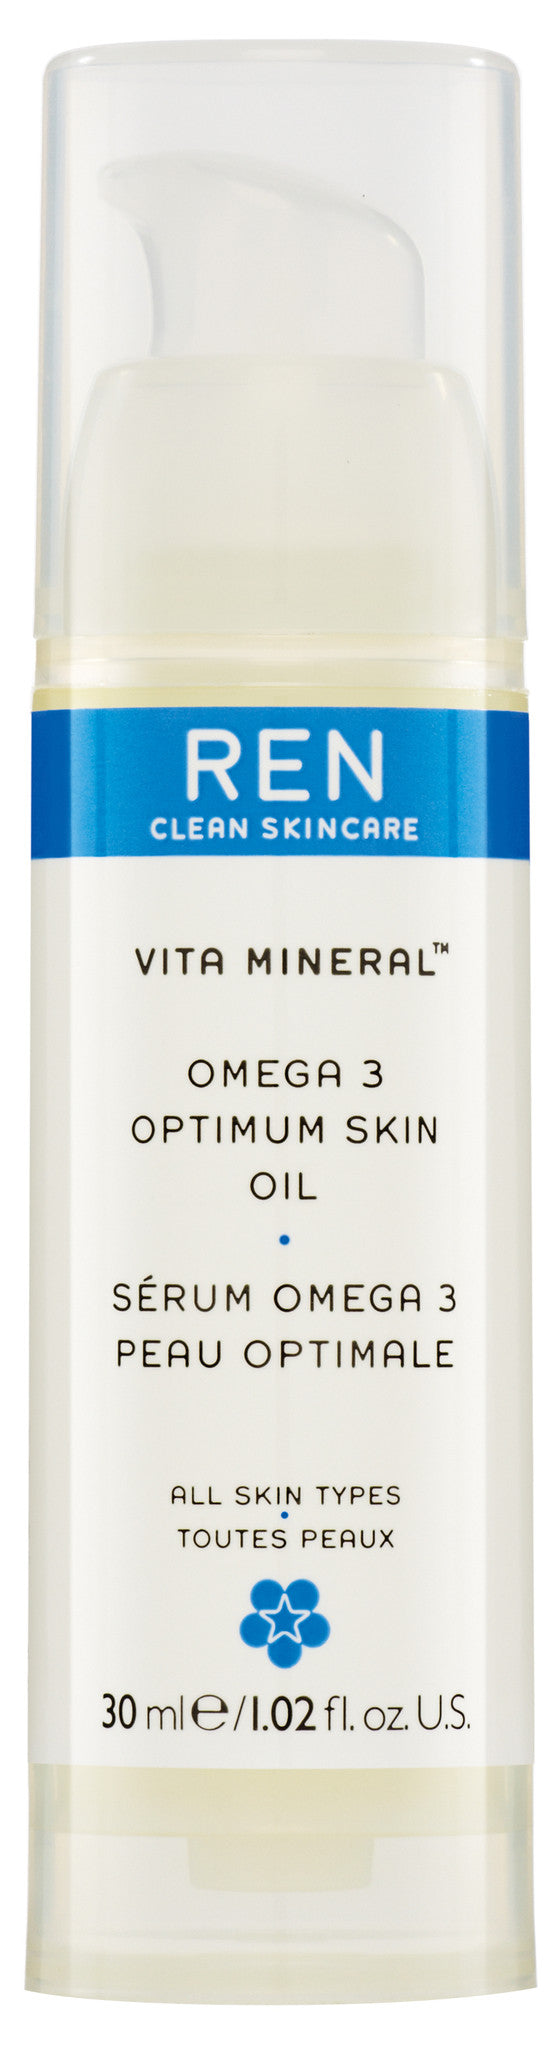 Vita Mineral™ Omega 3 Optimum Skin Serum Oil